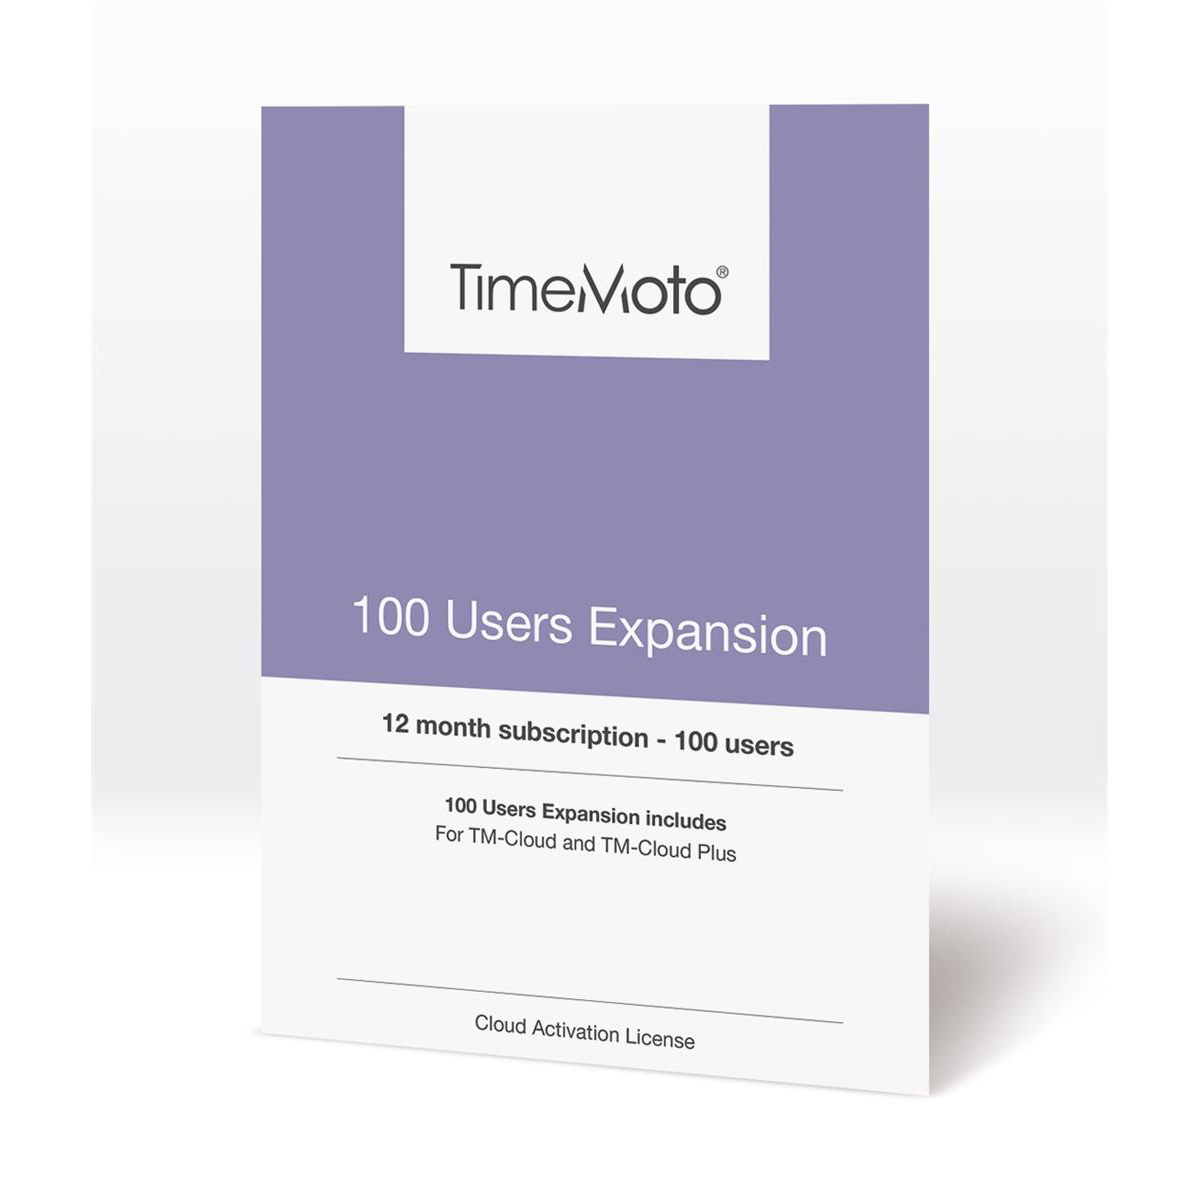 TimeMoto by Safescan TM-100 Cloud User Expansion 100 Users Ref 139-0593